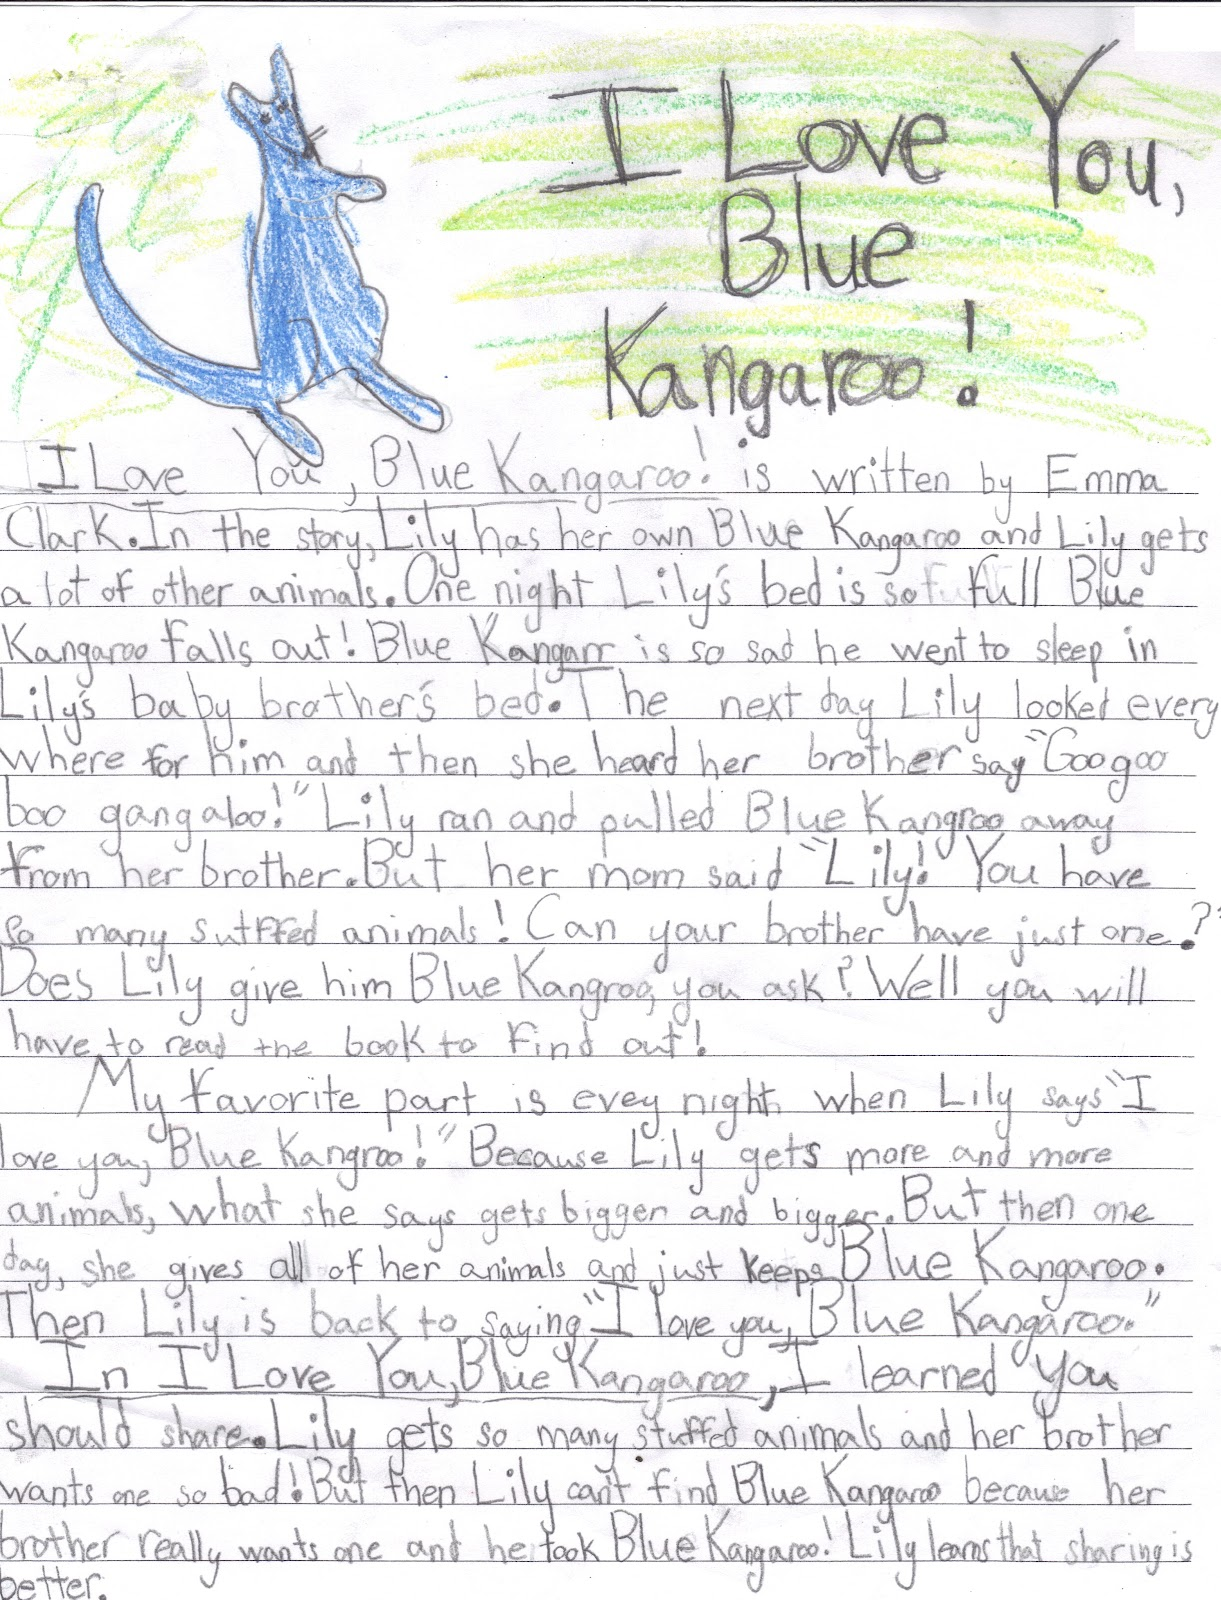 ... ... Book review example for 5th grade. Book Reviews on Pinterest